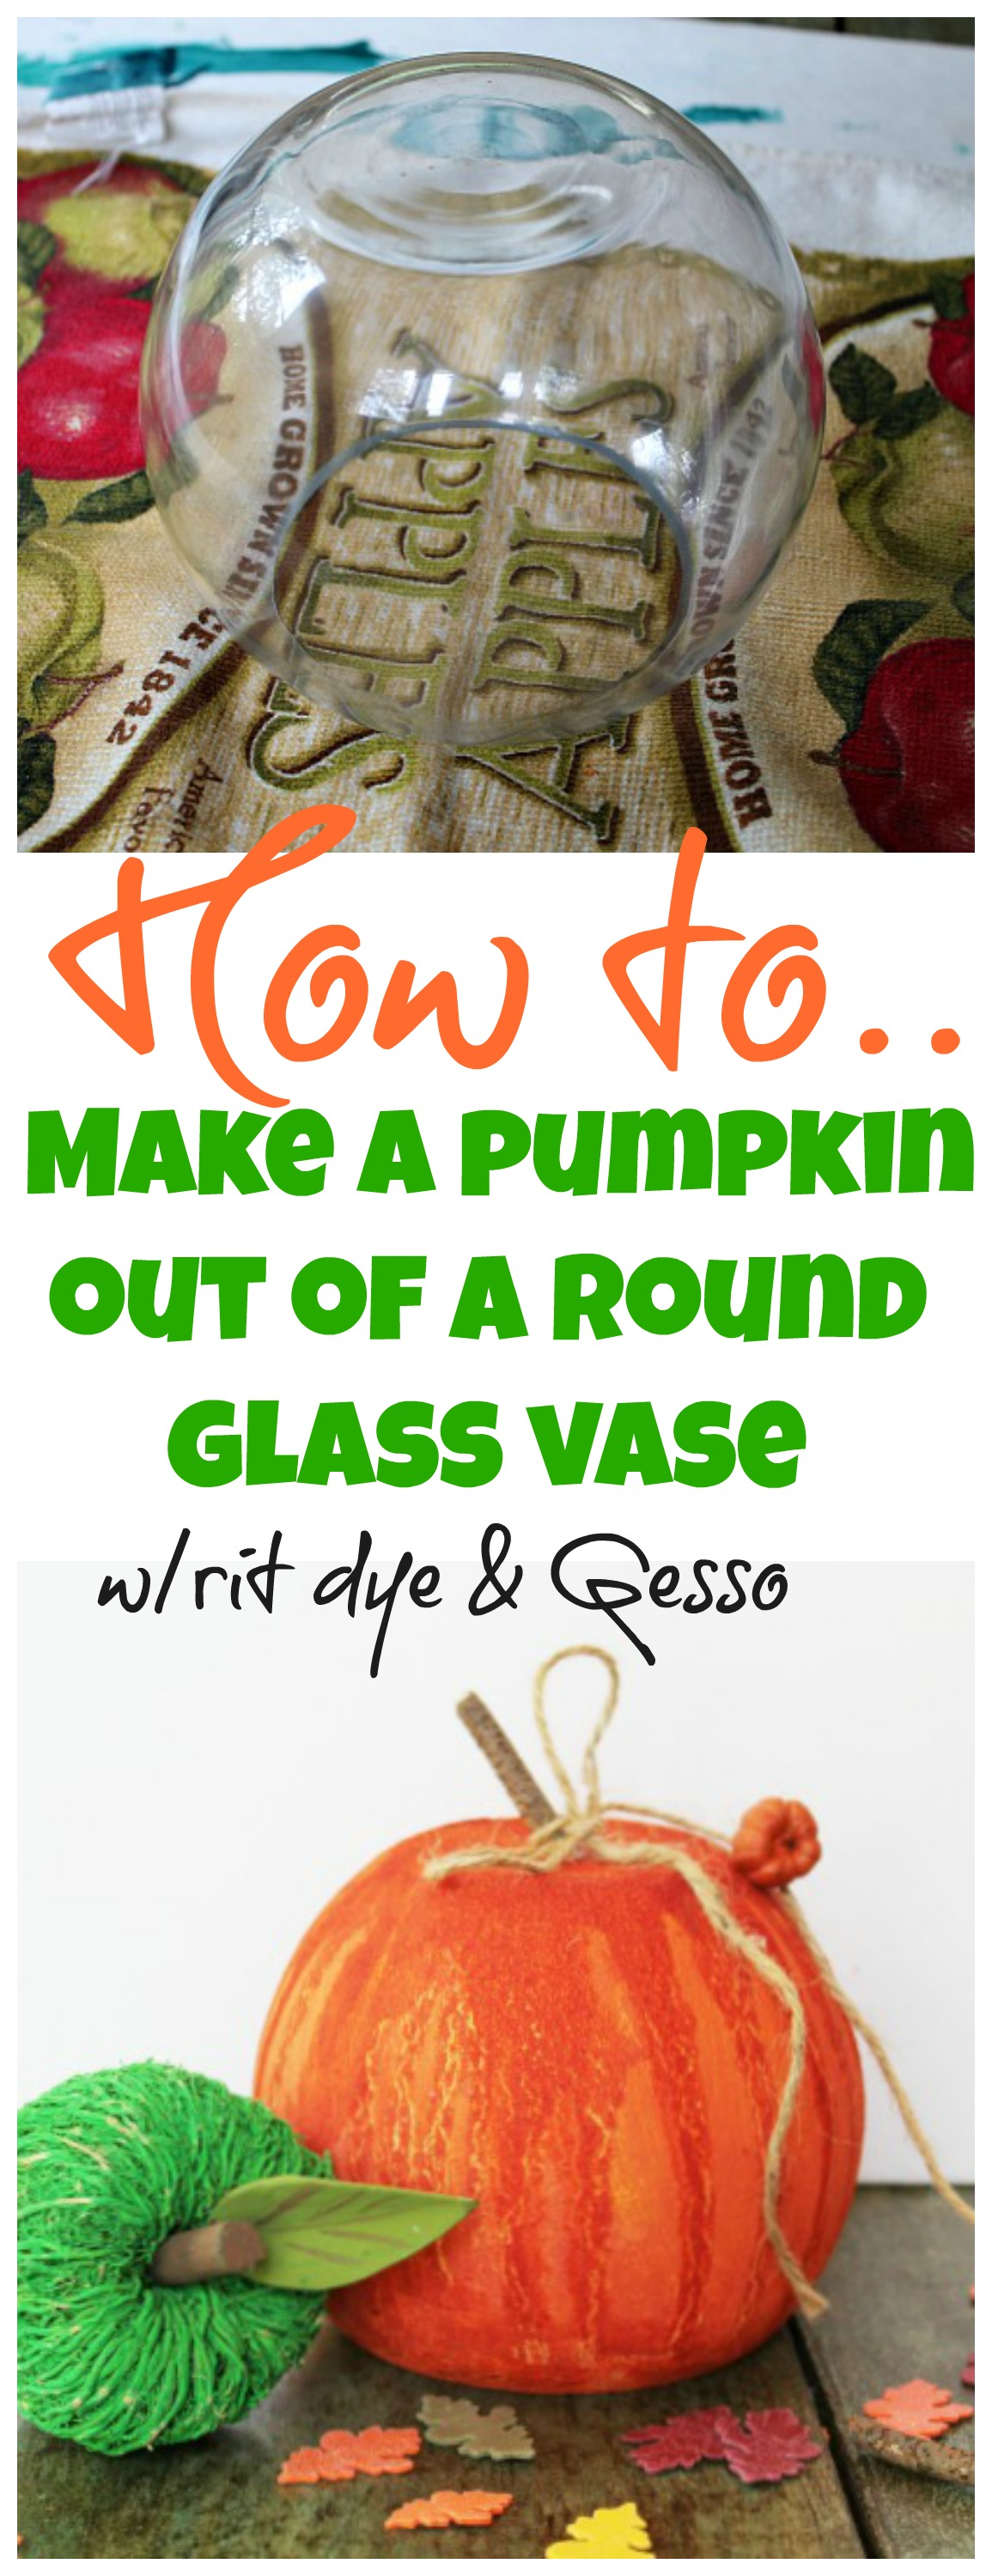 How to make a glass round vase into a pumpkin with Rit dye and Gesso